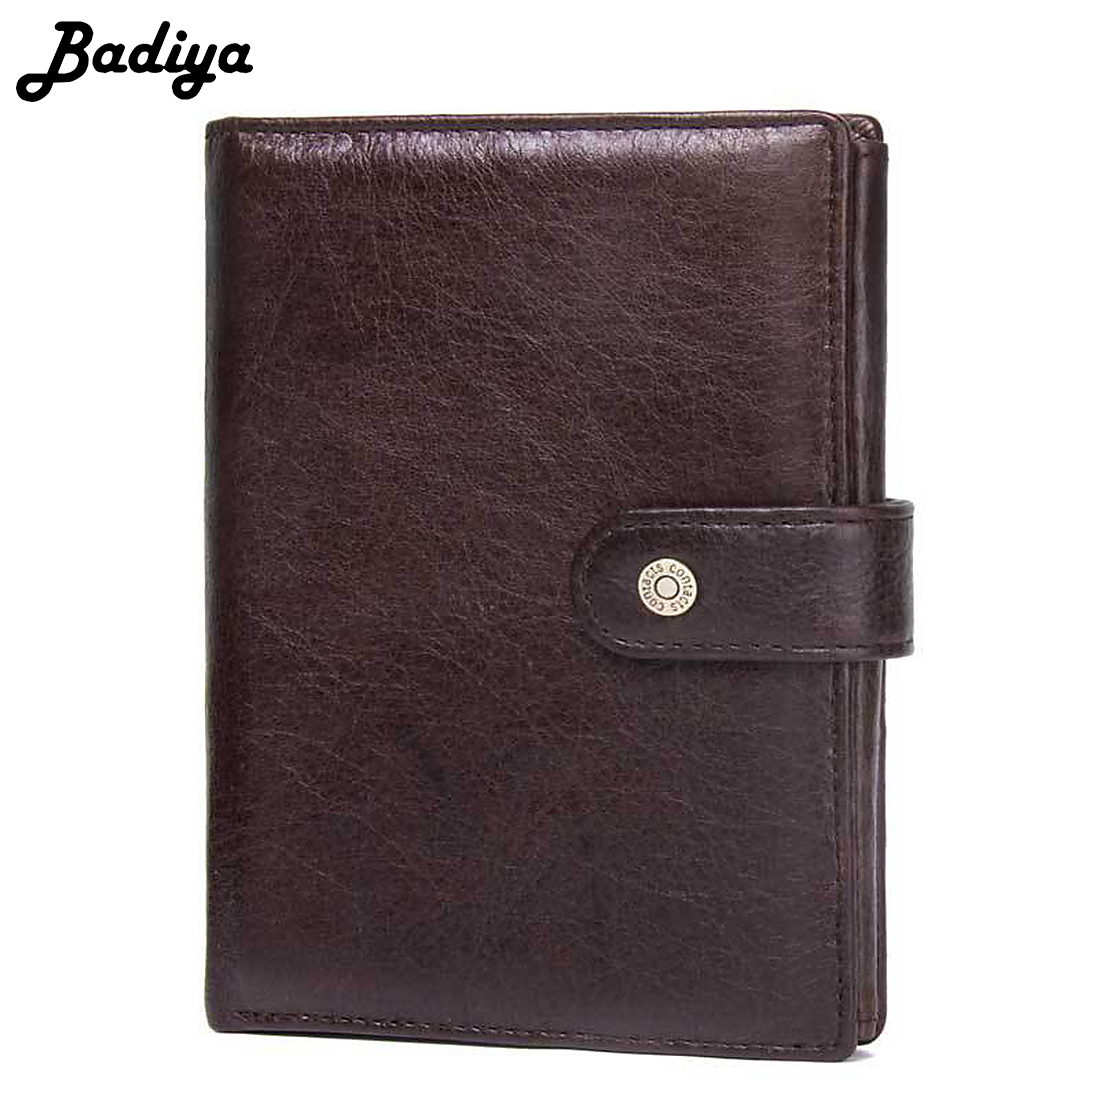 Men Wallet Genuine Leather Passport Cover Short Vintage Cowhide Purse Men Coin Pouch Hasp Card Holder Luxury Brand Passport Case genuine leather men wallets short coin purse vintage double zipper cowhide leather wallet luxury brand card holder small purse